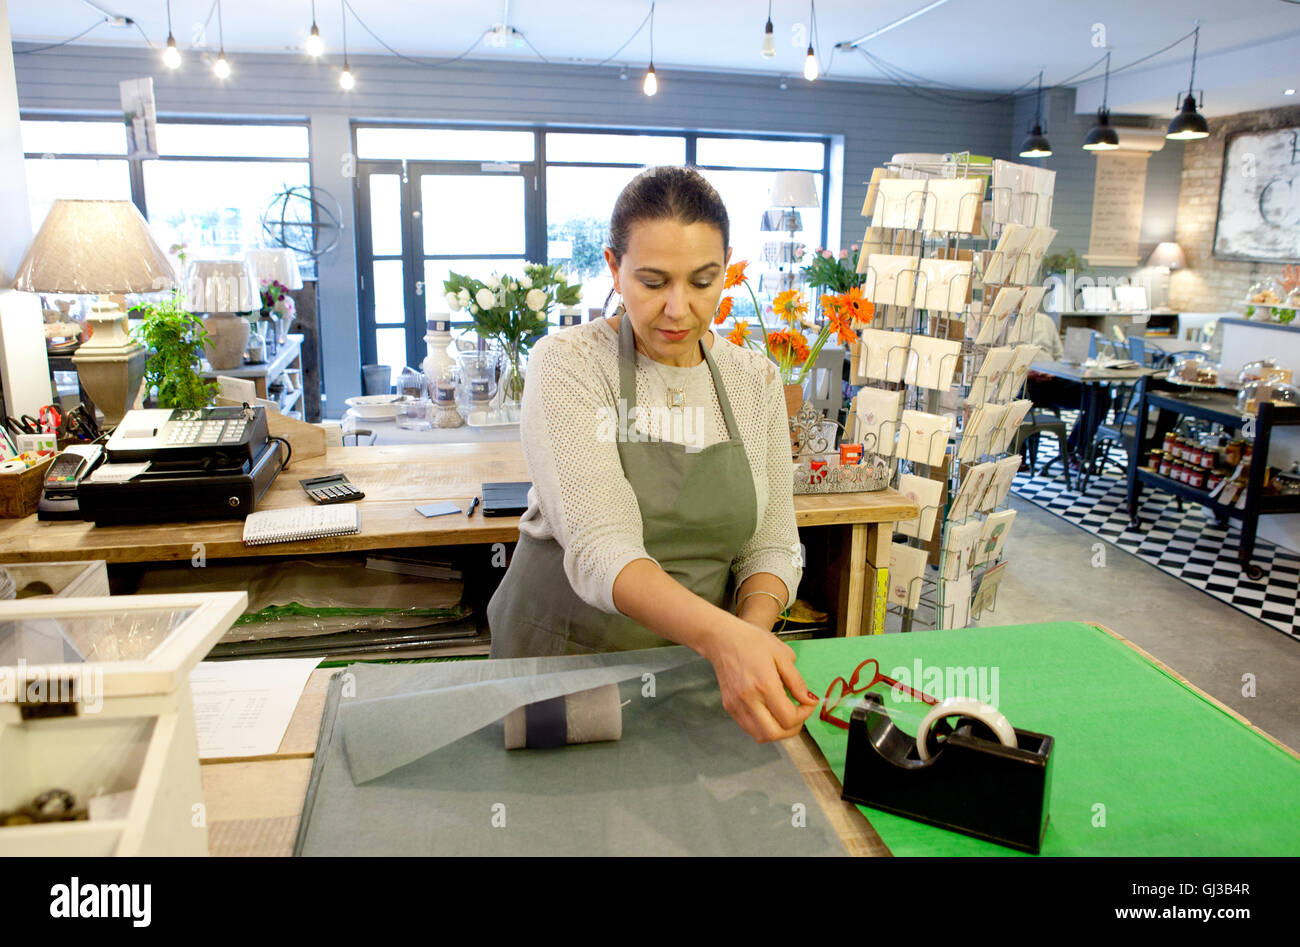 Female sales assistant wrapping candle at checkout in gift shop - Stock Image